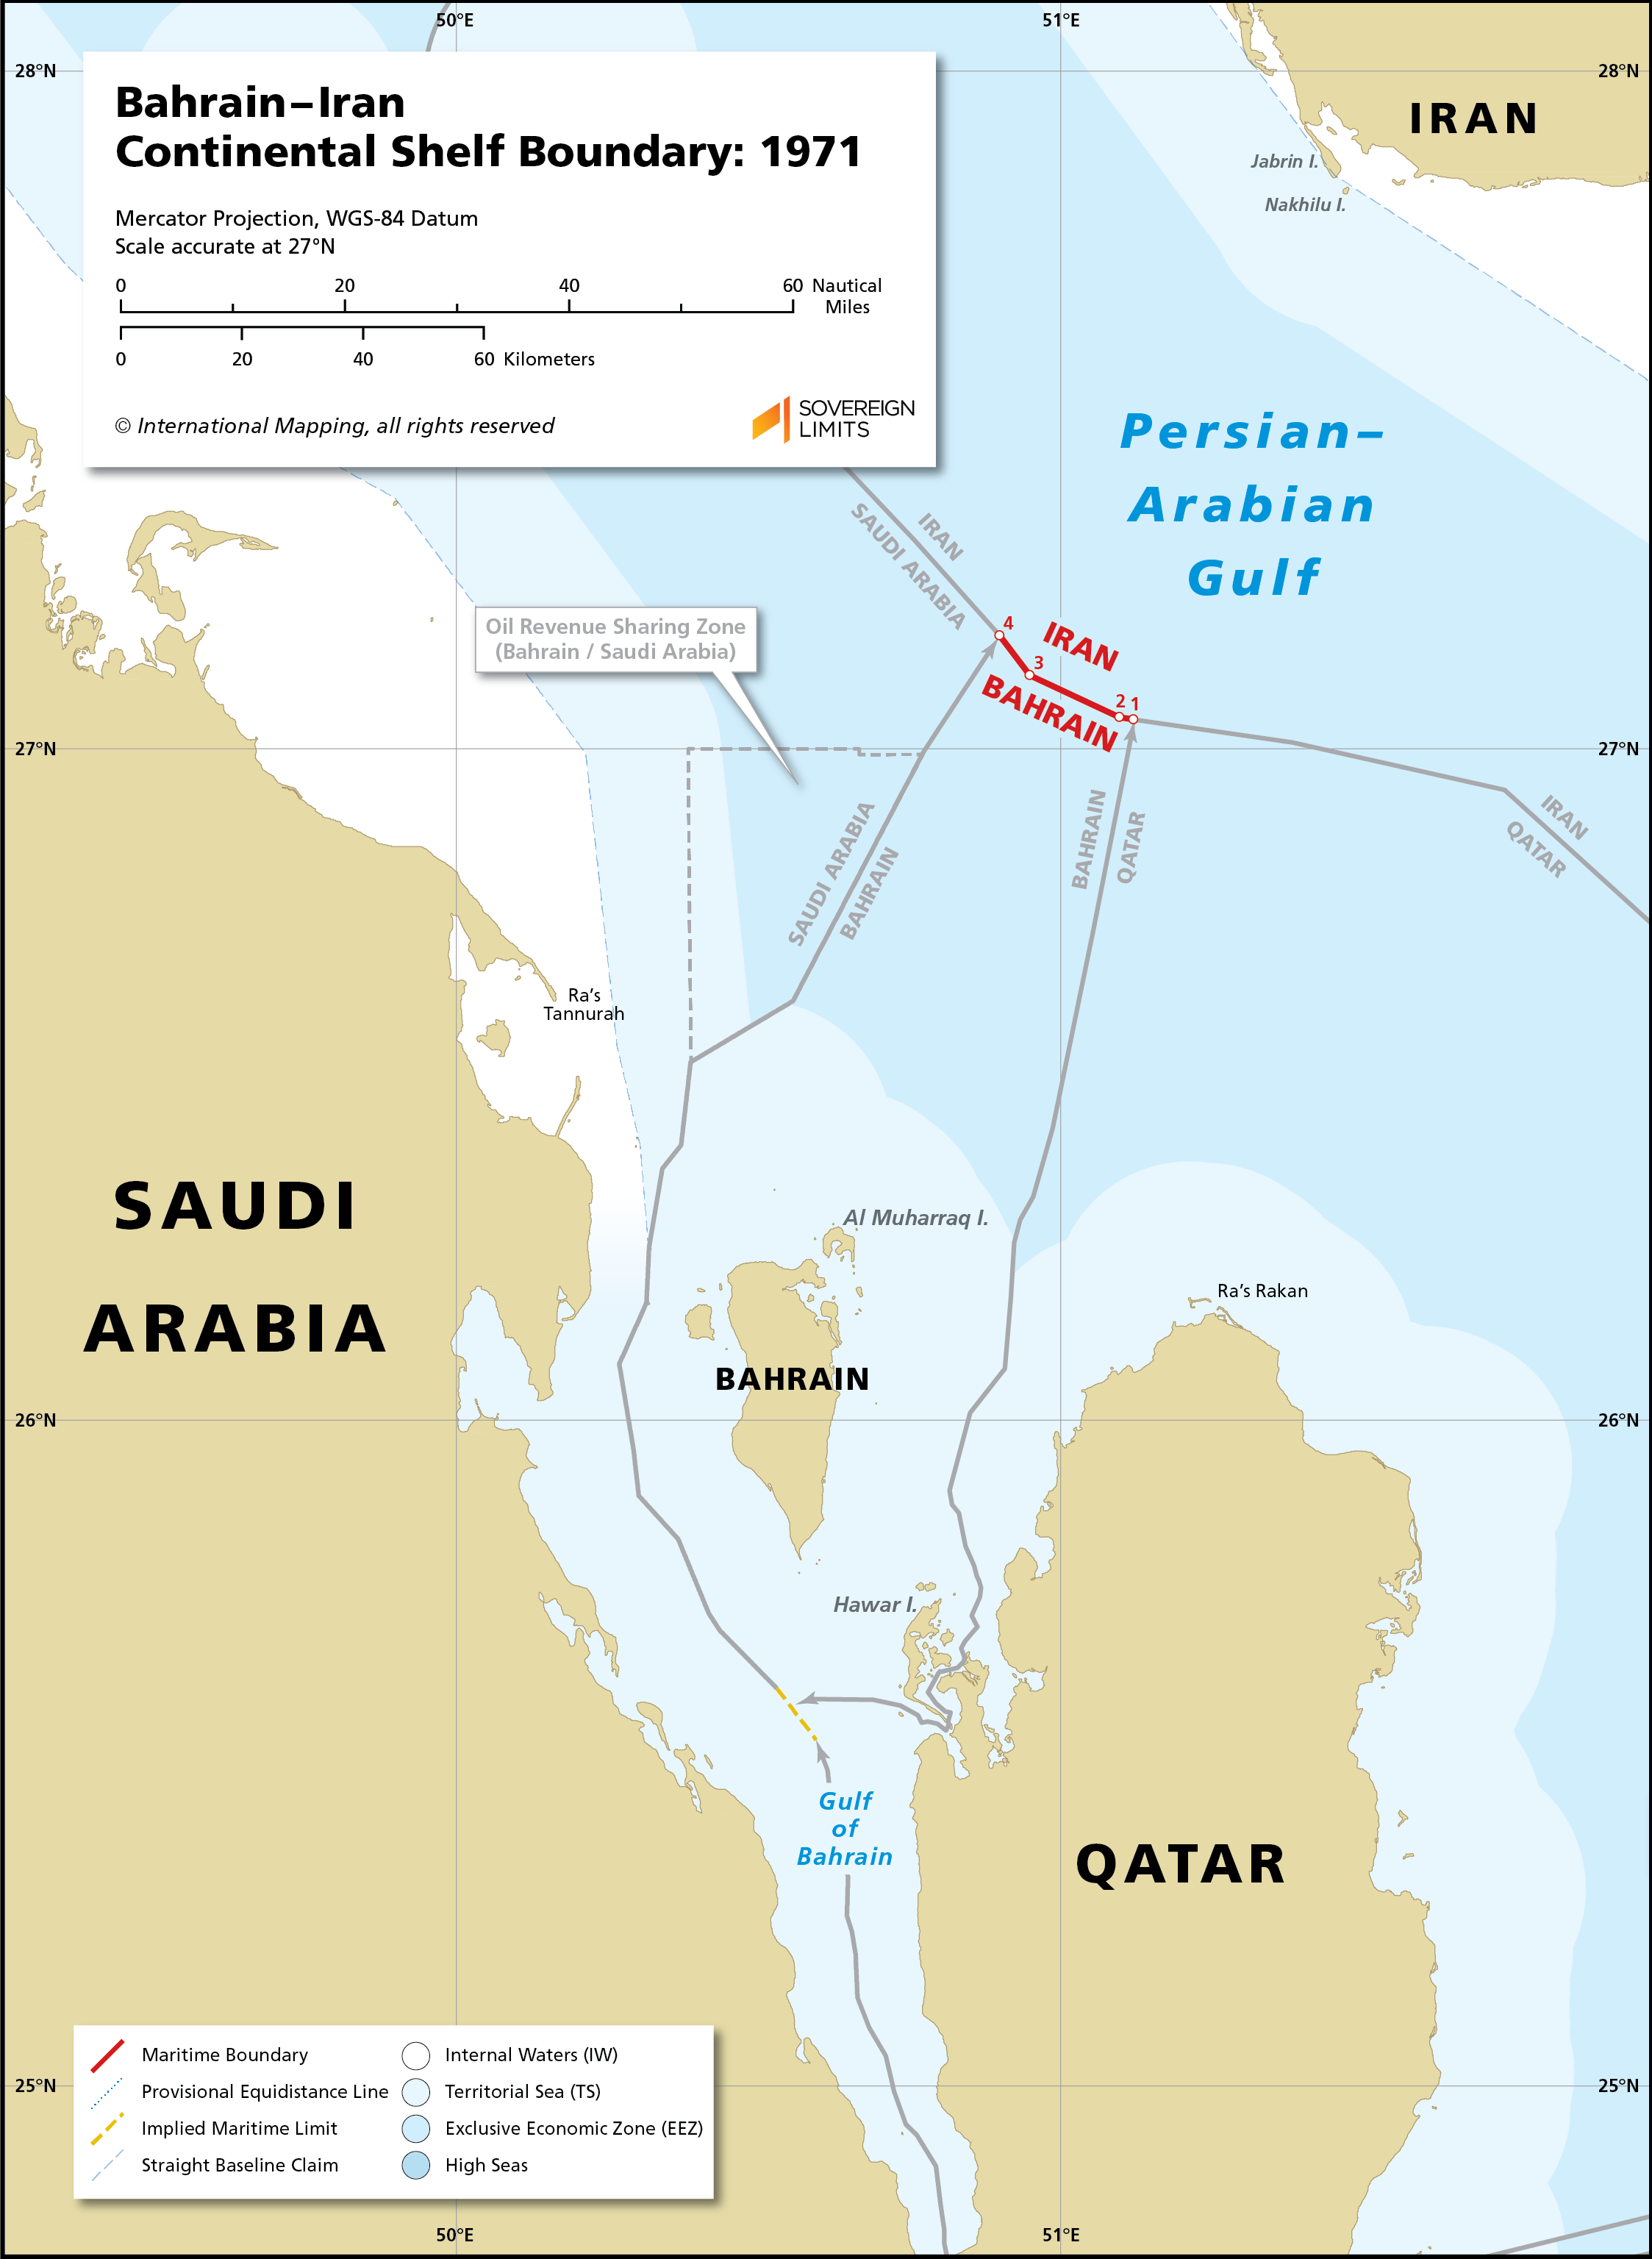 Map showing the maritime boundary between Bahrain and Iran